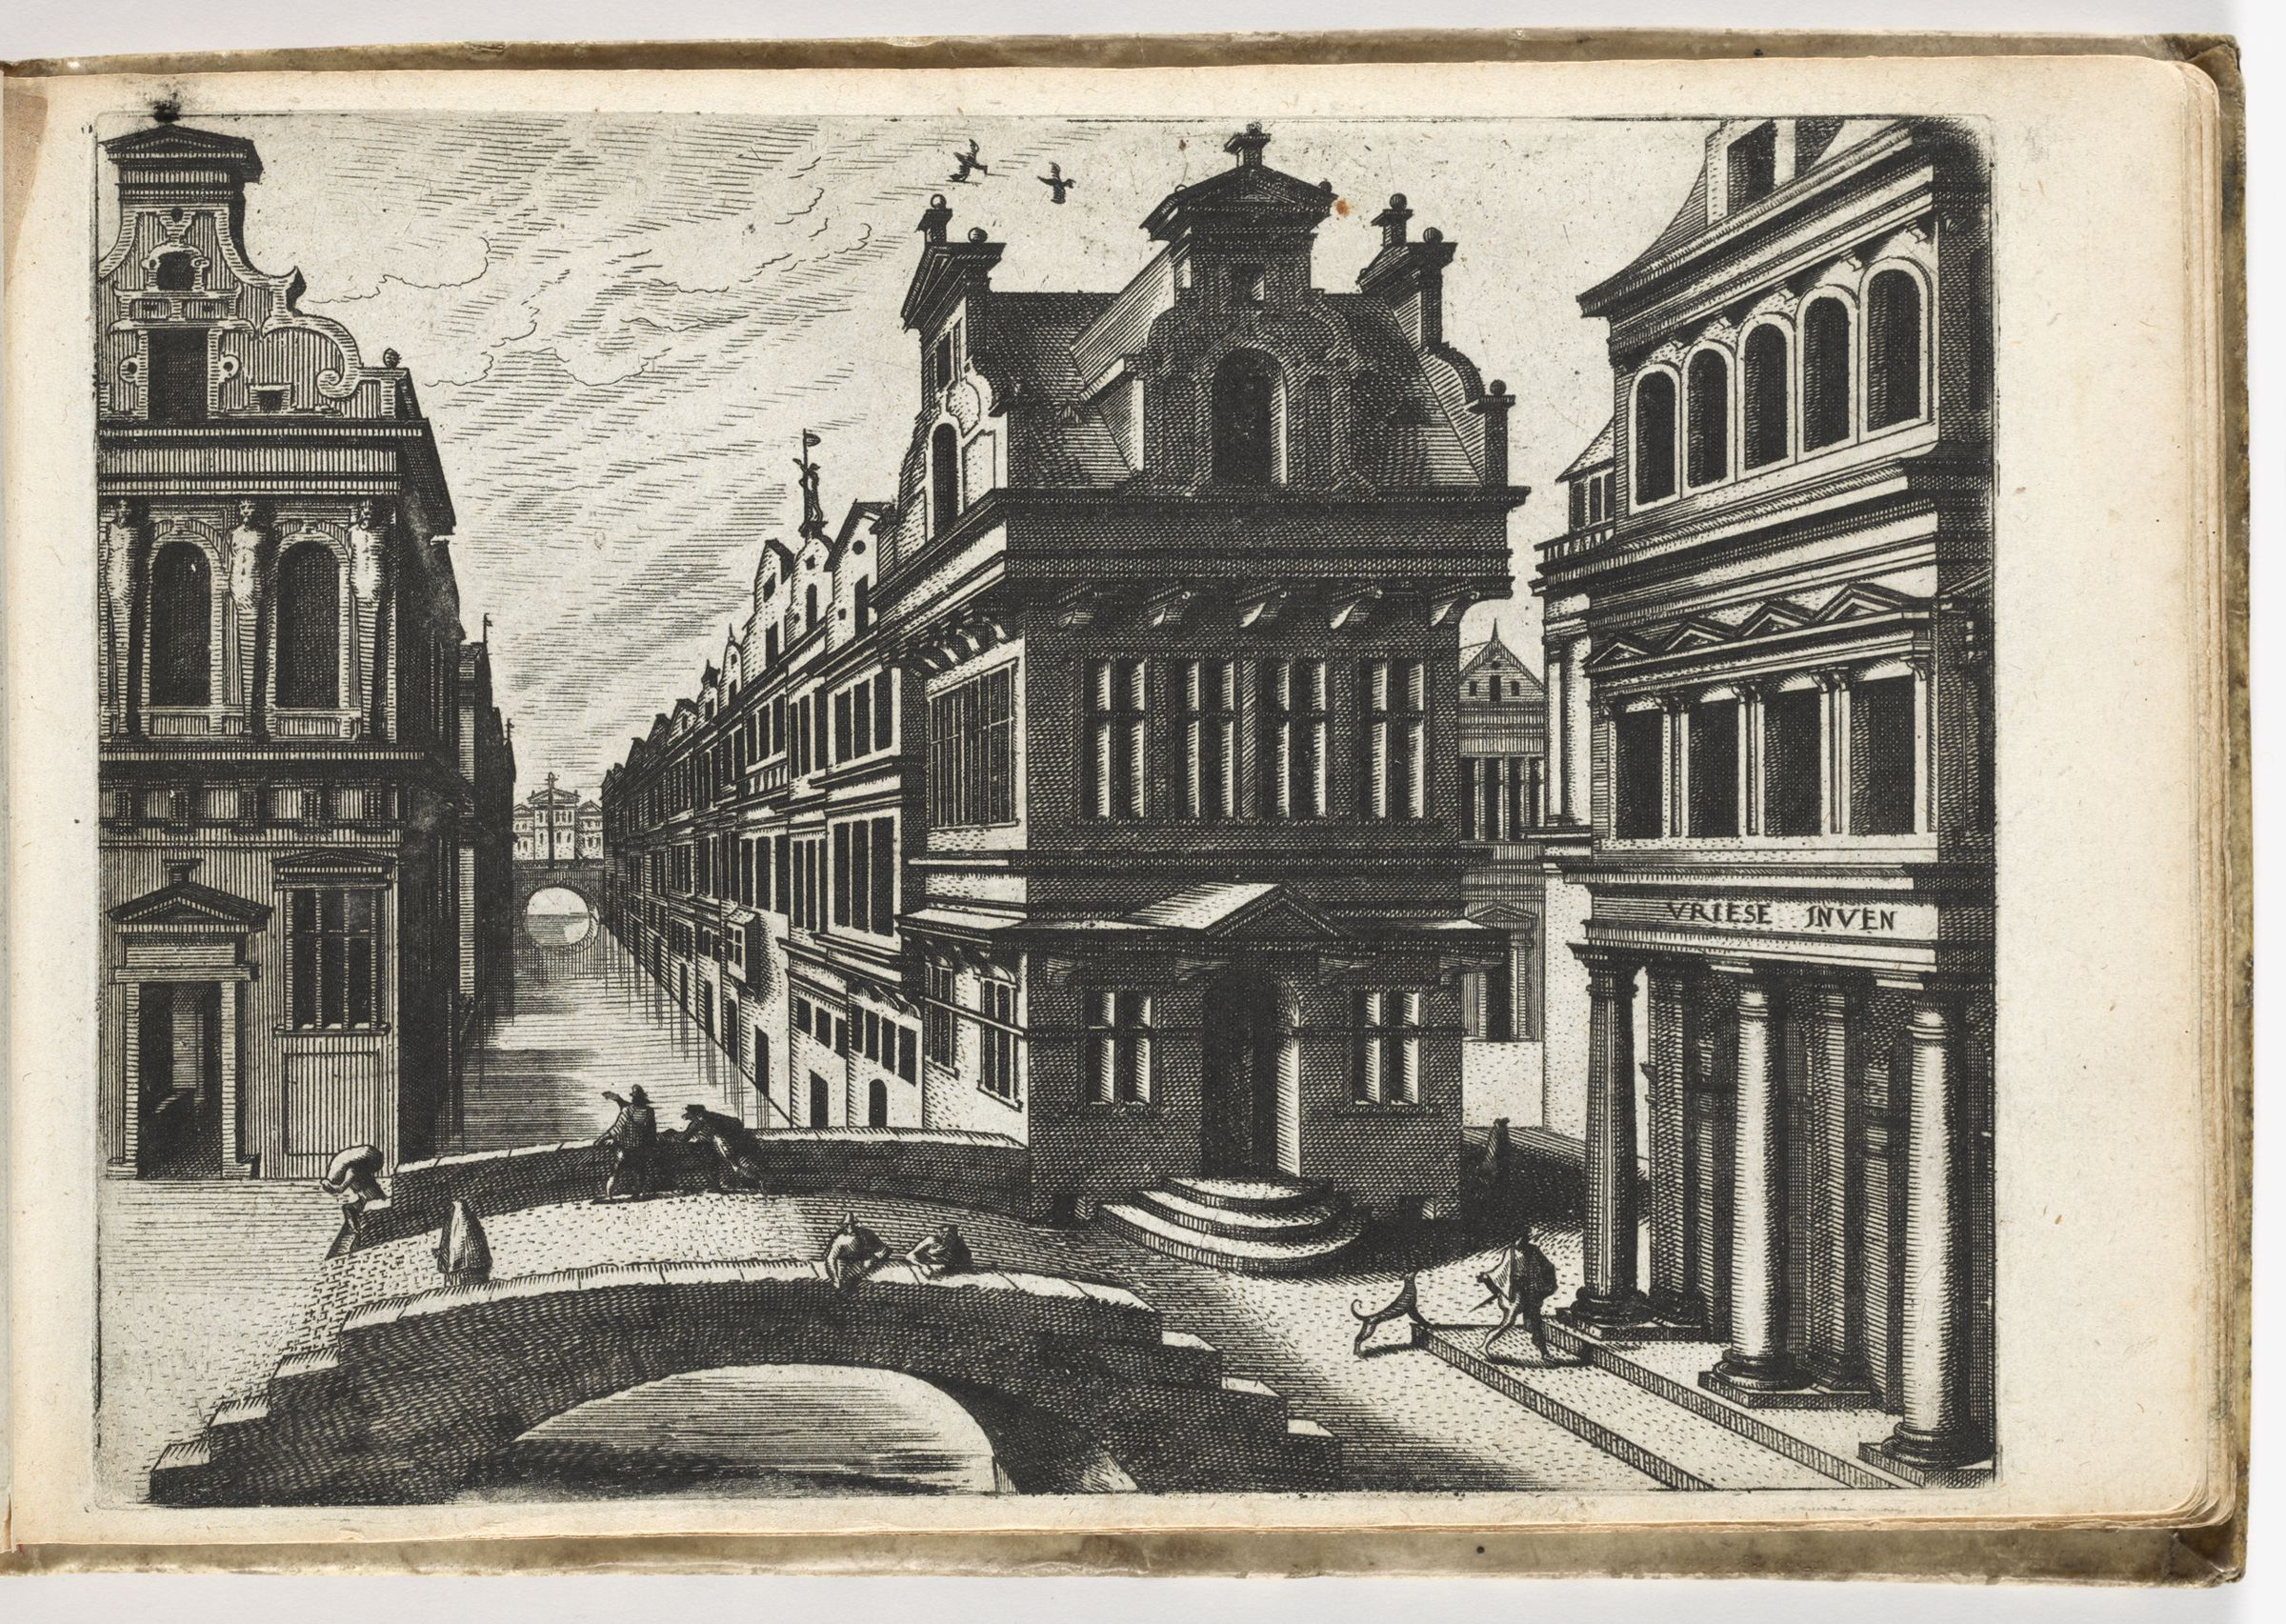 View Down A Canal In A City, Vista Closed By Building With Pediment